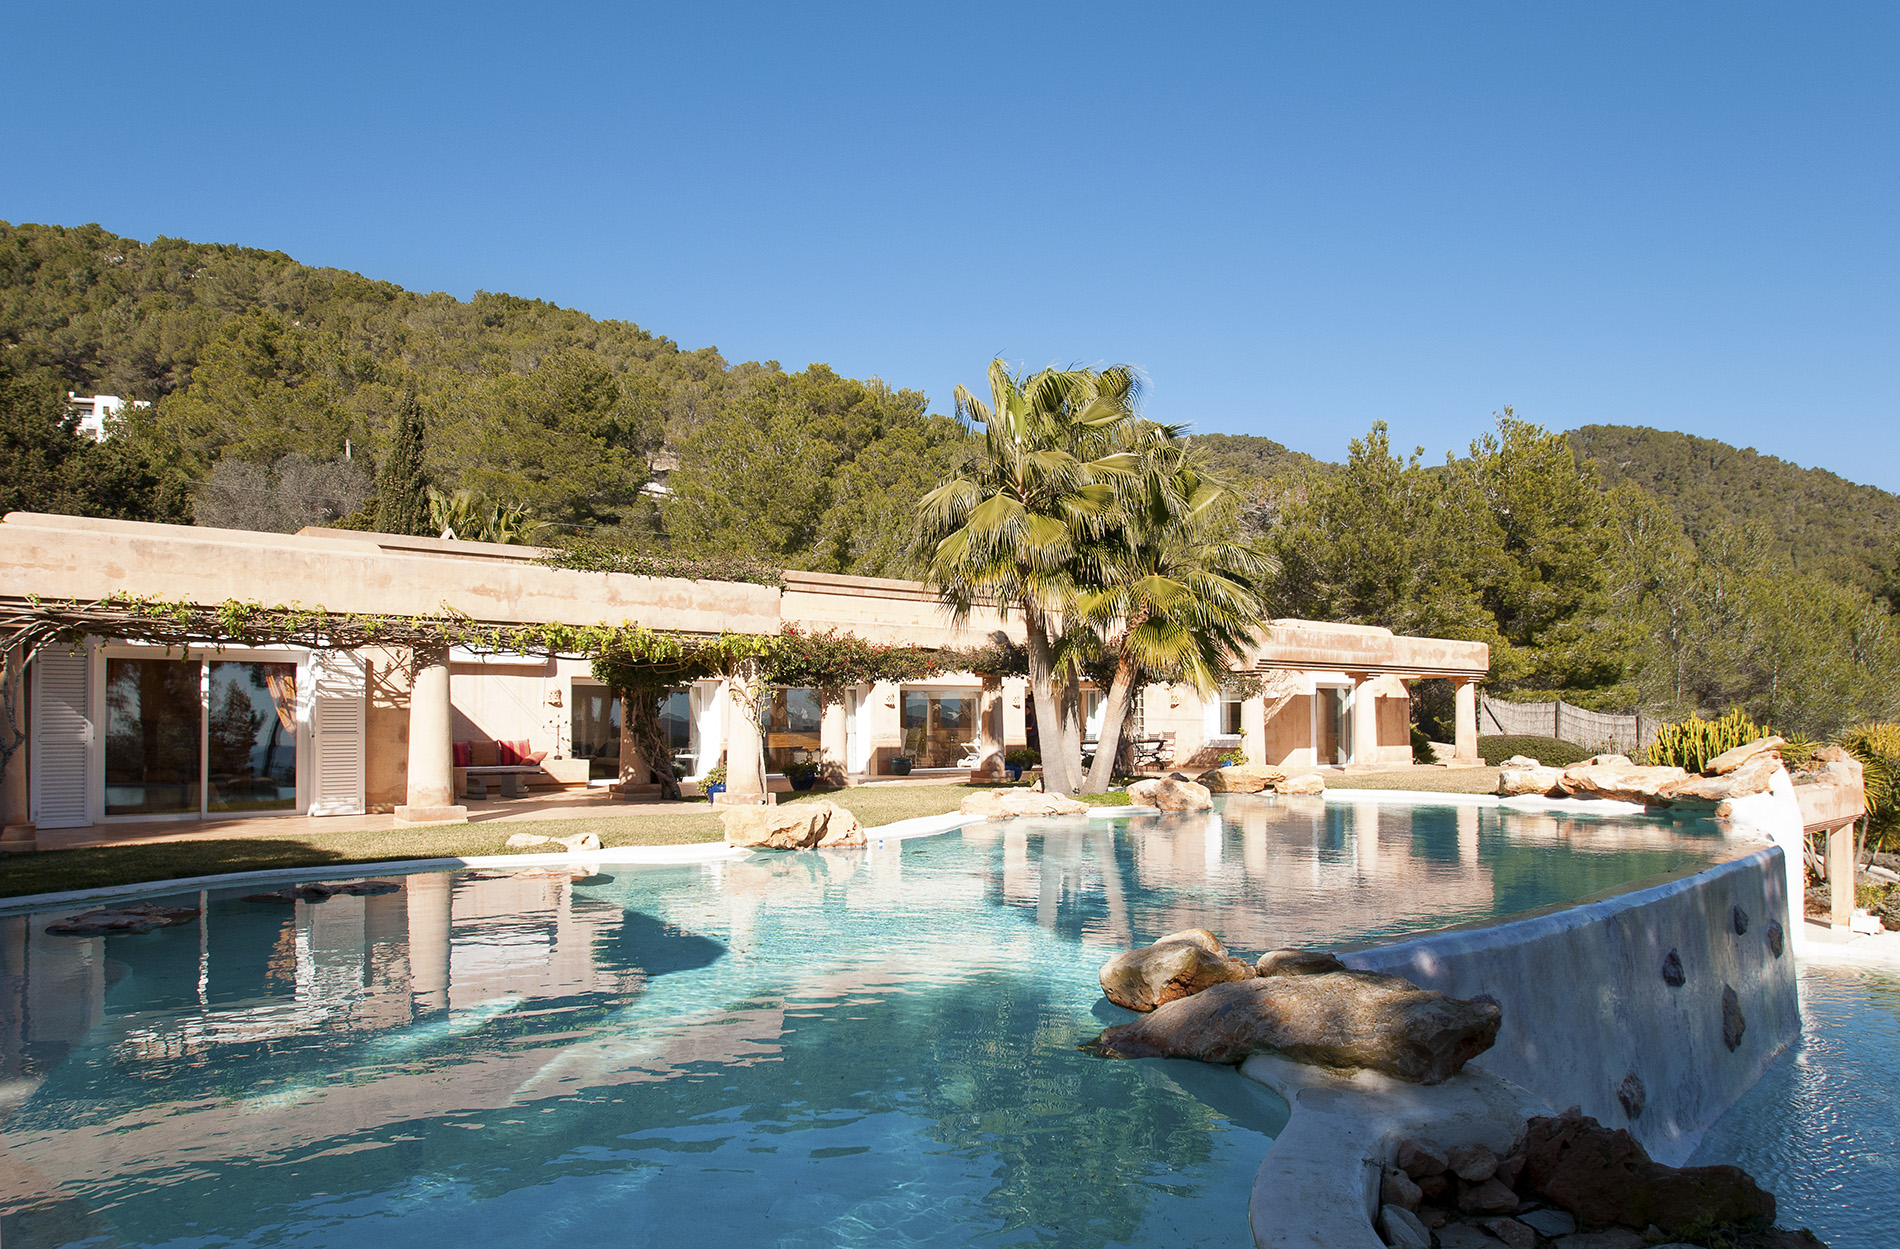 단독 가정 주택 용 매매 에 Luxury Villa And Beautiful Setting In Es Cubells Sant Josep, 아이비자, 07817 스페인